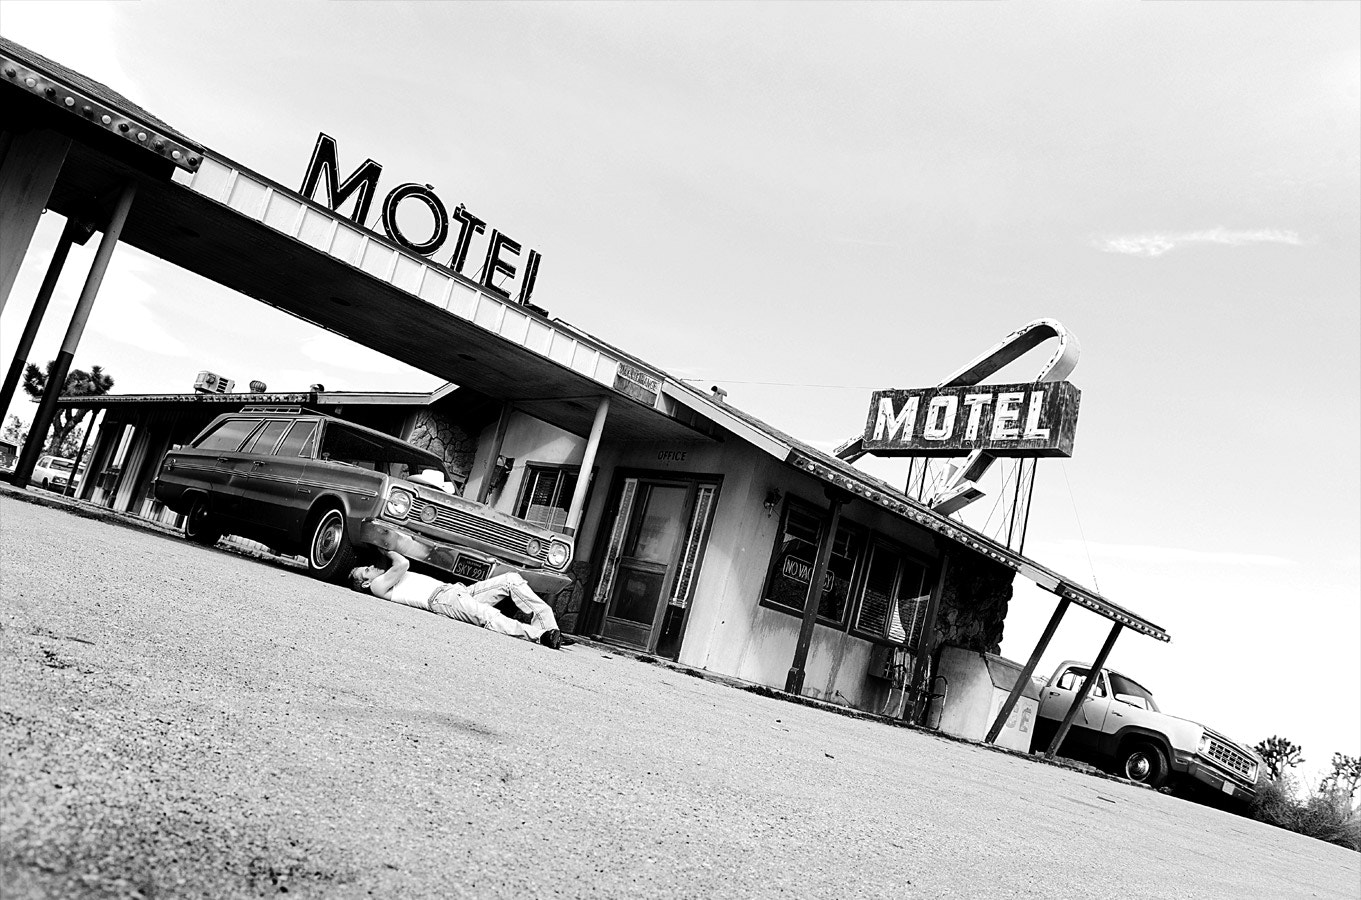 Photograph Motel in the Desert by Cory Zimmermann on 500px